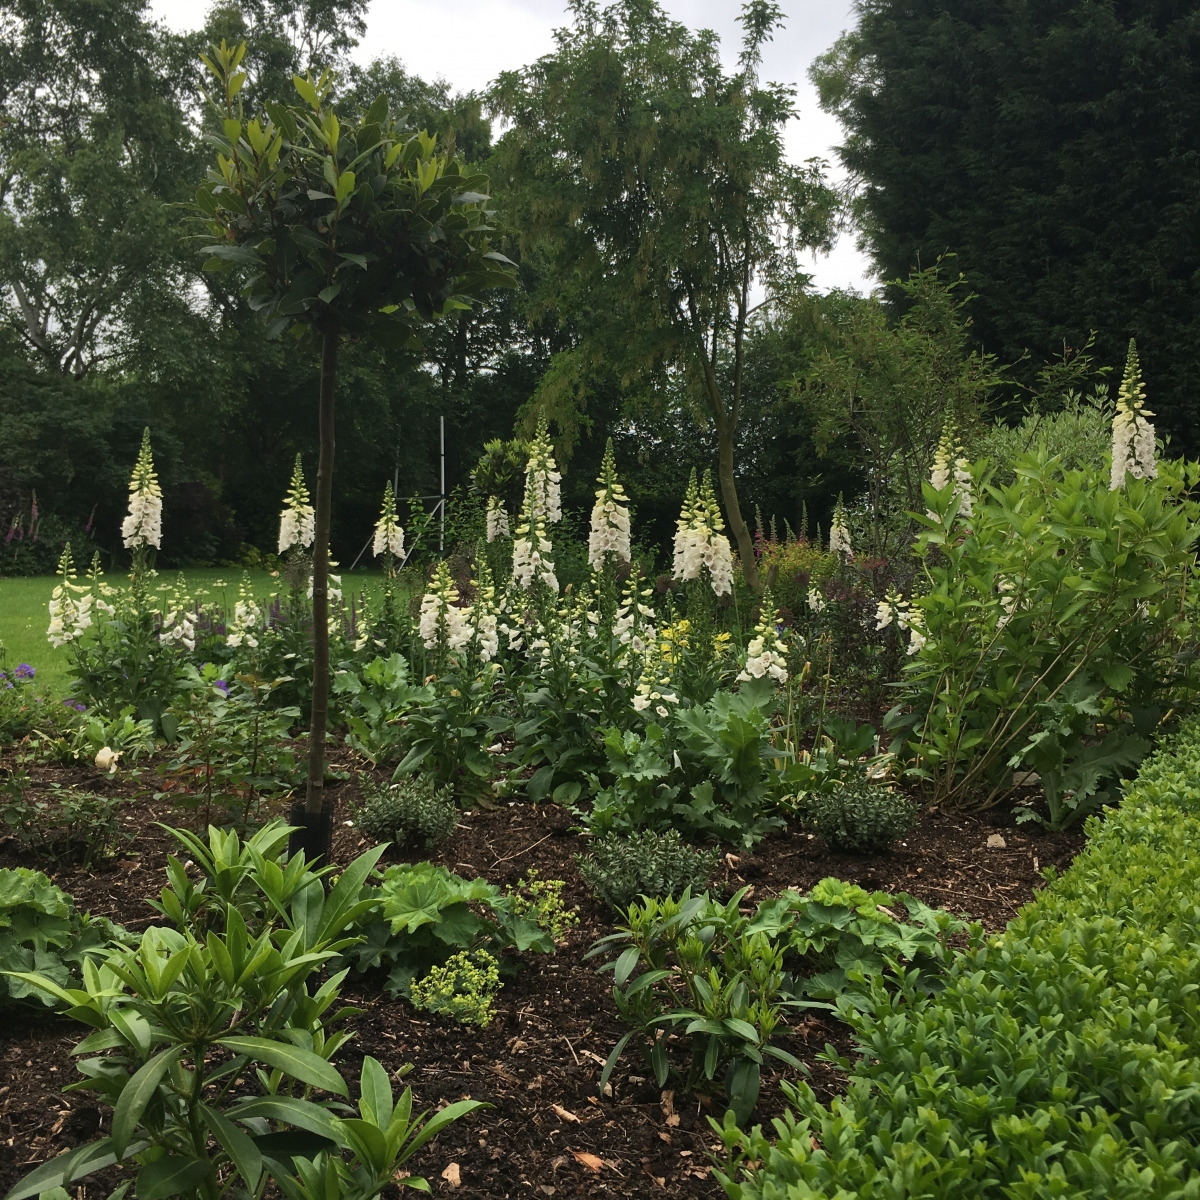 Clay Coton White foxgloves